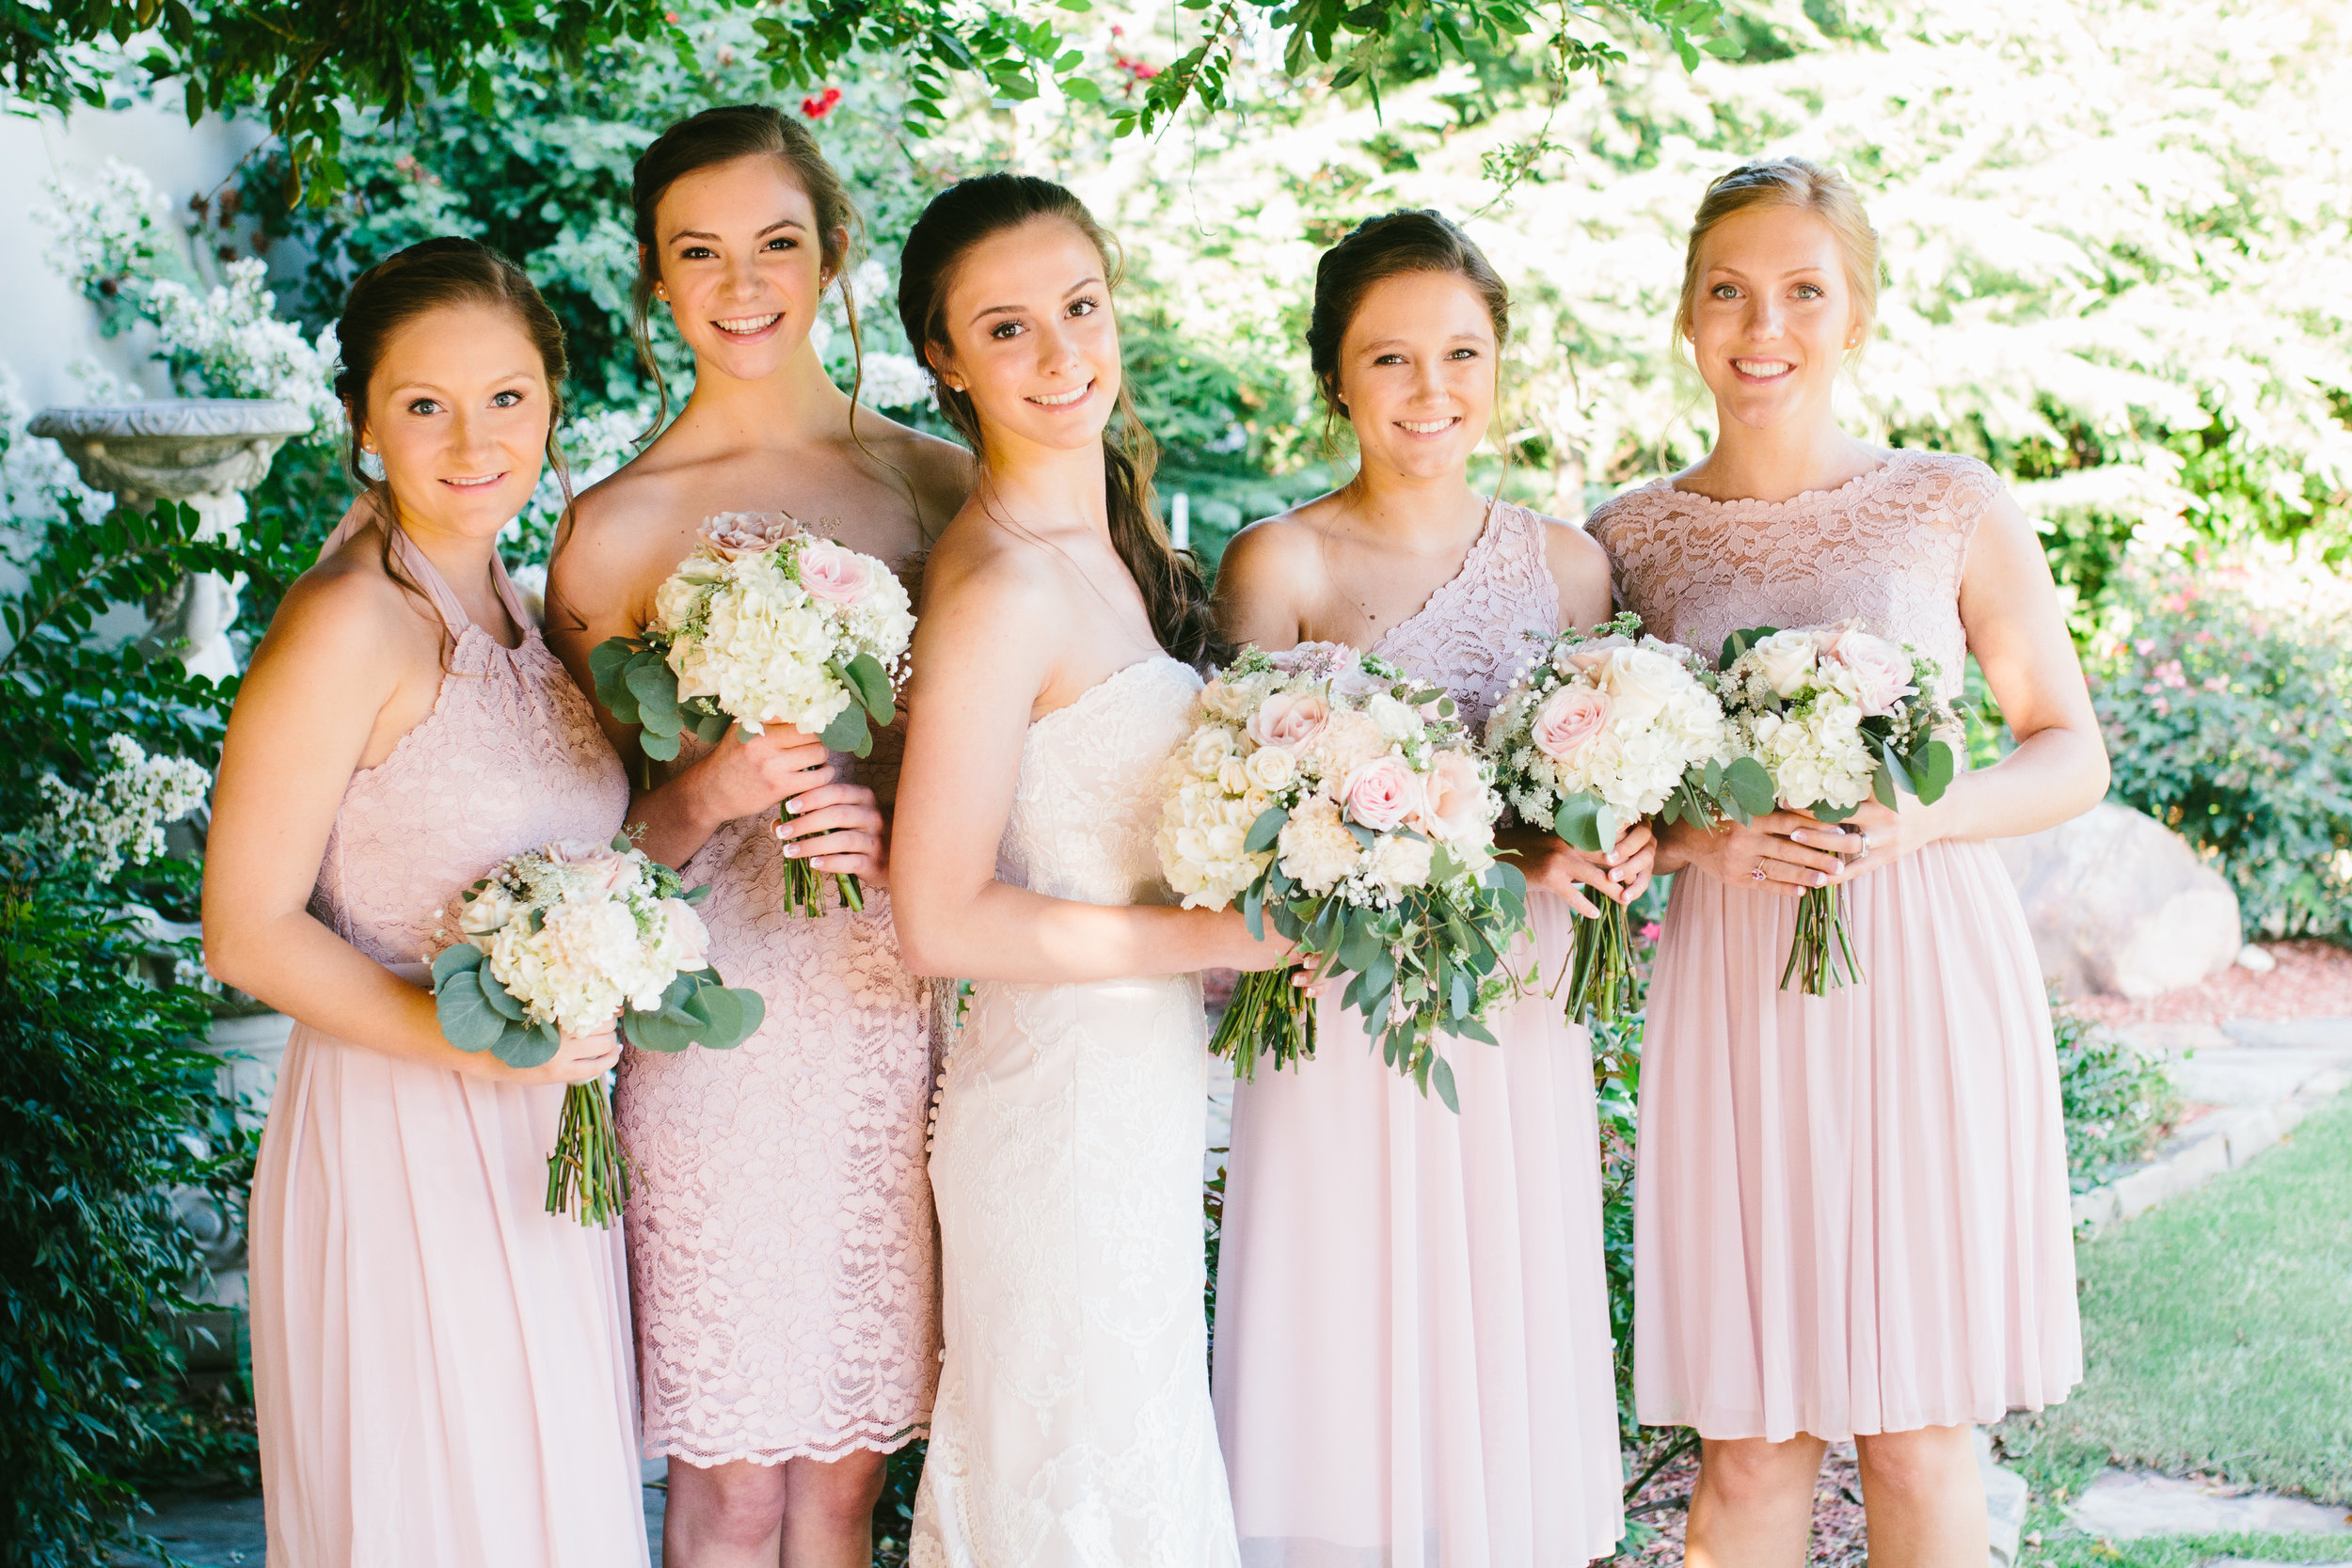 Blush Bridesmaid Dresses - A Champagne + Blush Oklahoma Wedding - Meditations Event Center - From Britt's Eye View Photography